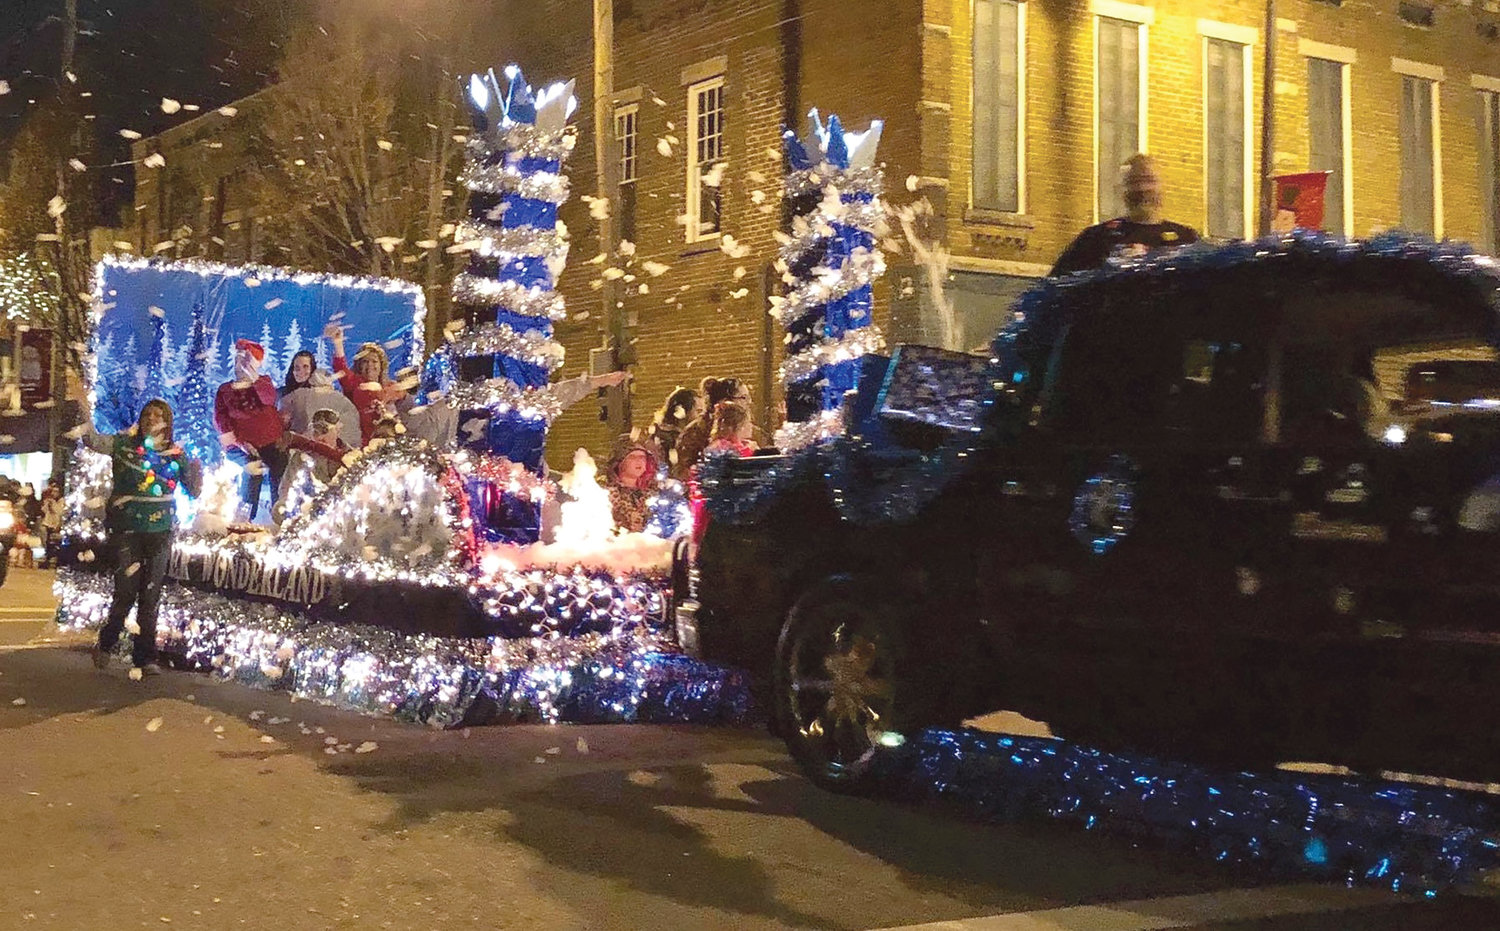 THE WINNER in the Religious float category during the MainStreet Christmas Parade was Unity Church of God. MainStreet Cleveland credited Trophies Unlimited for being the trophy sponsor.